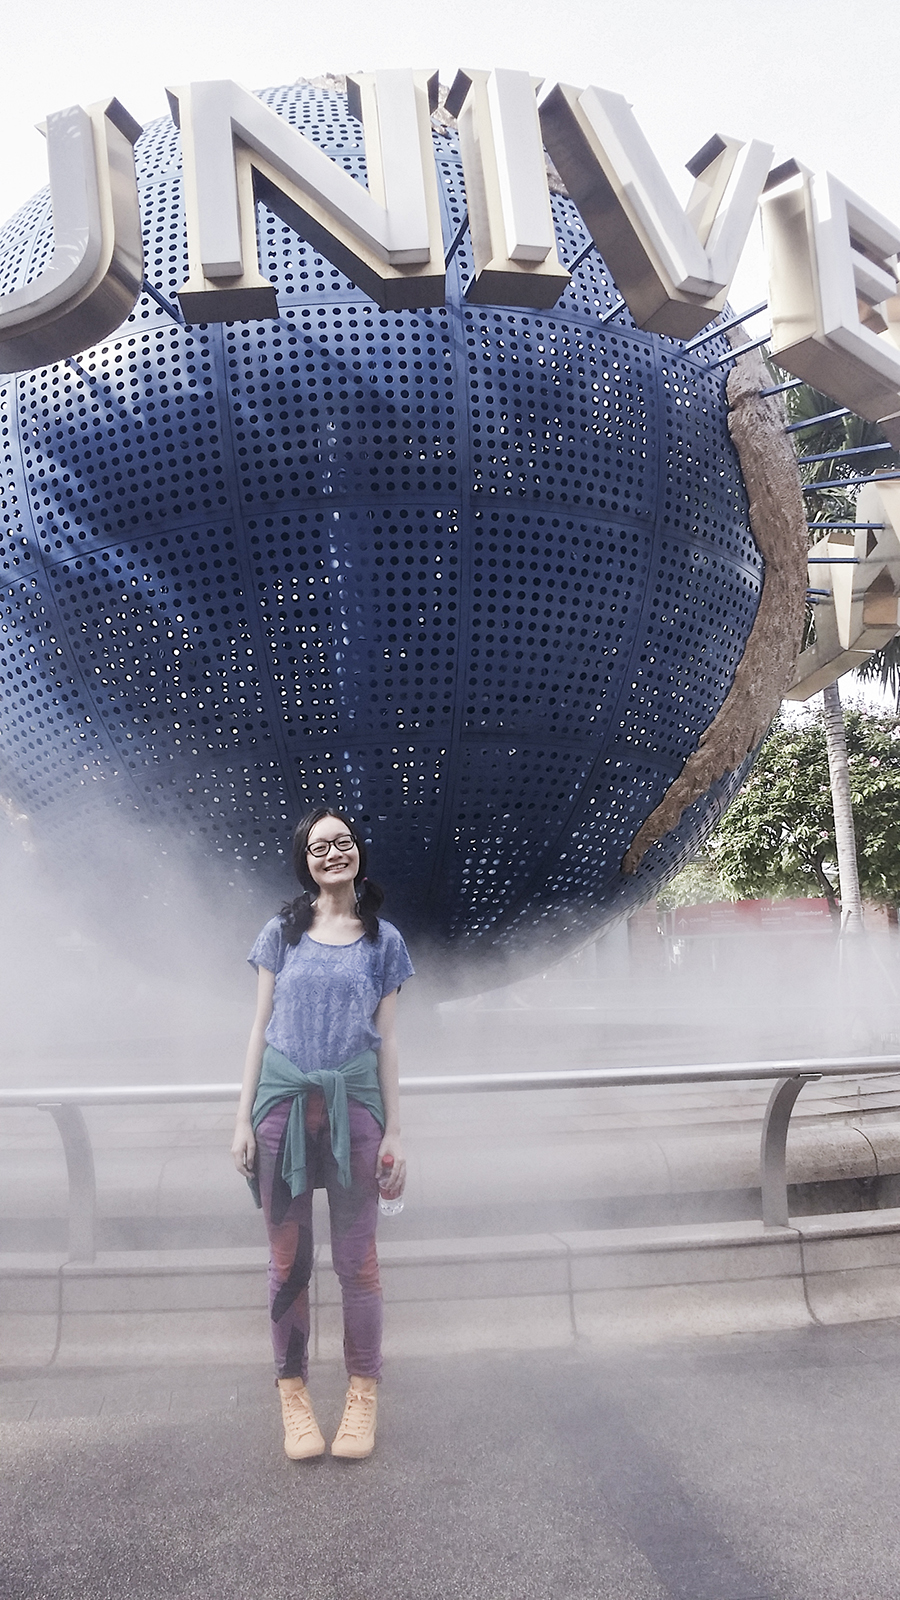 Posing in front of the globe at Universal Studios Singapore.